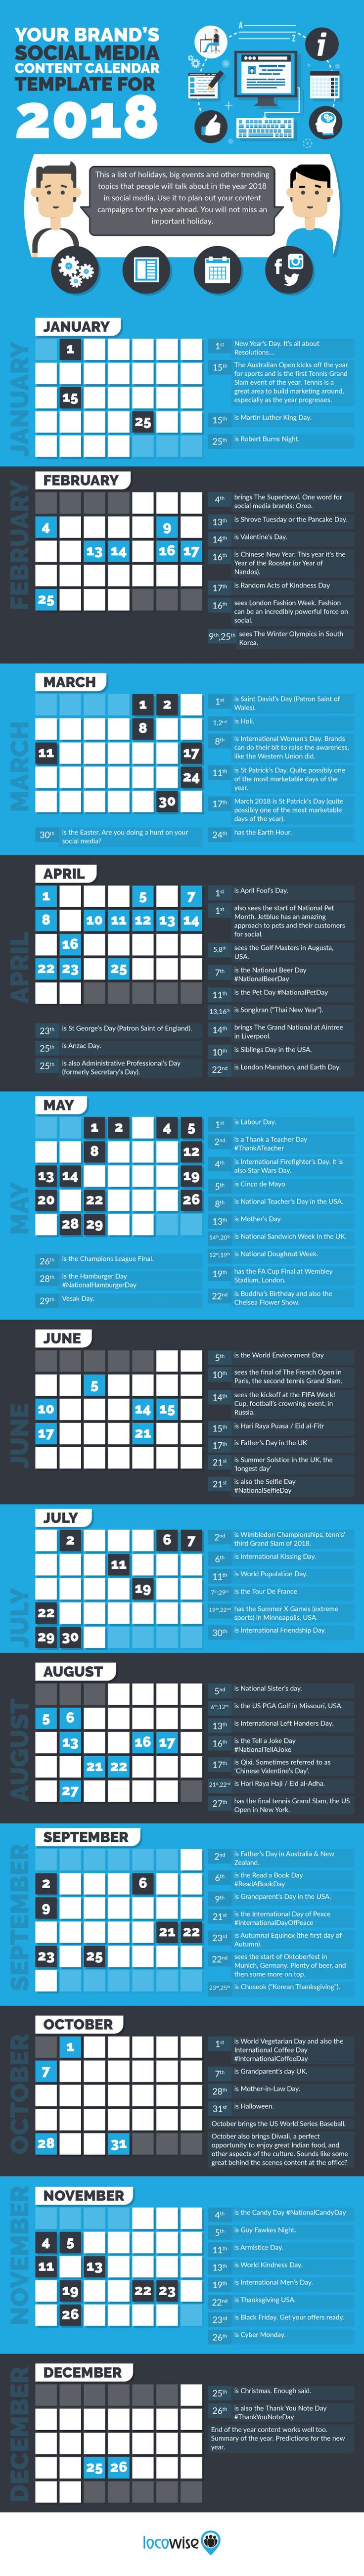 Your Brand's Social Media Content Calendar Template For 2018